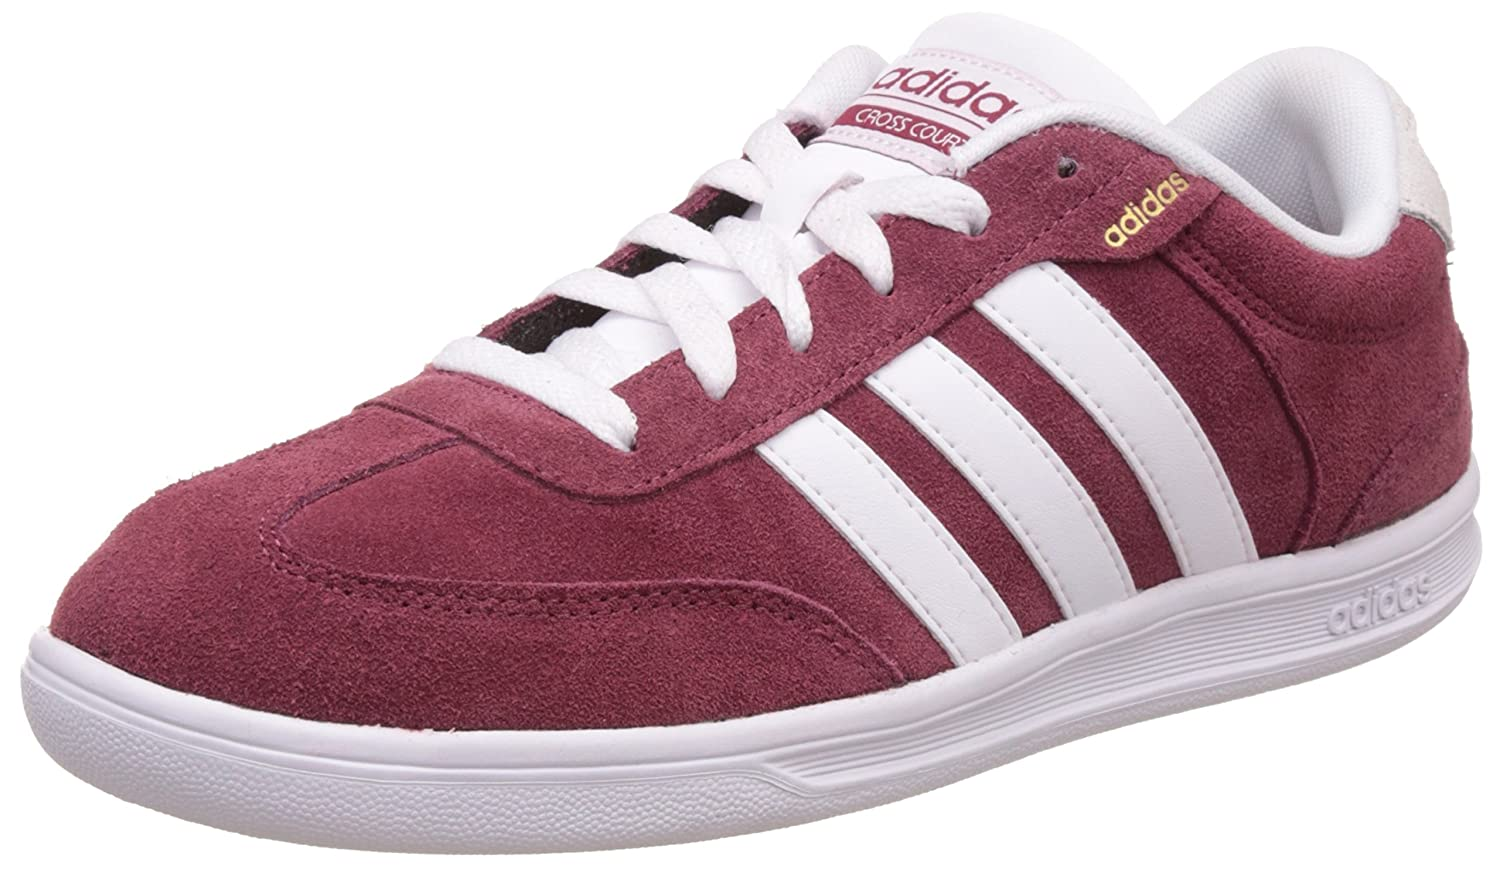 Buy Adidas neo Men's Cross Court Cburgu, Ftwwht and Magold Leather ...